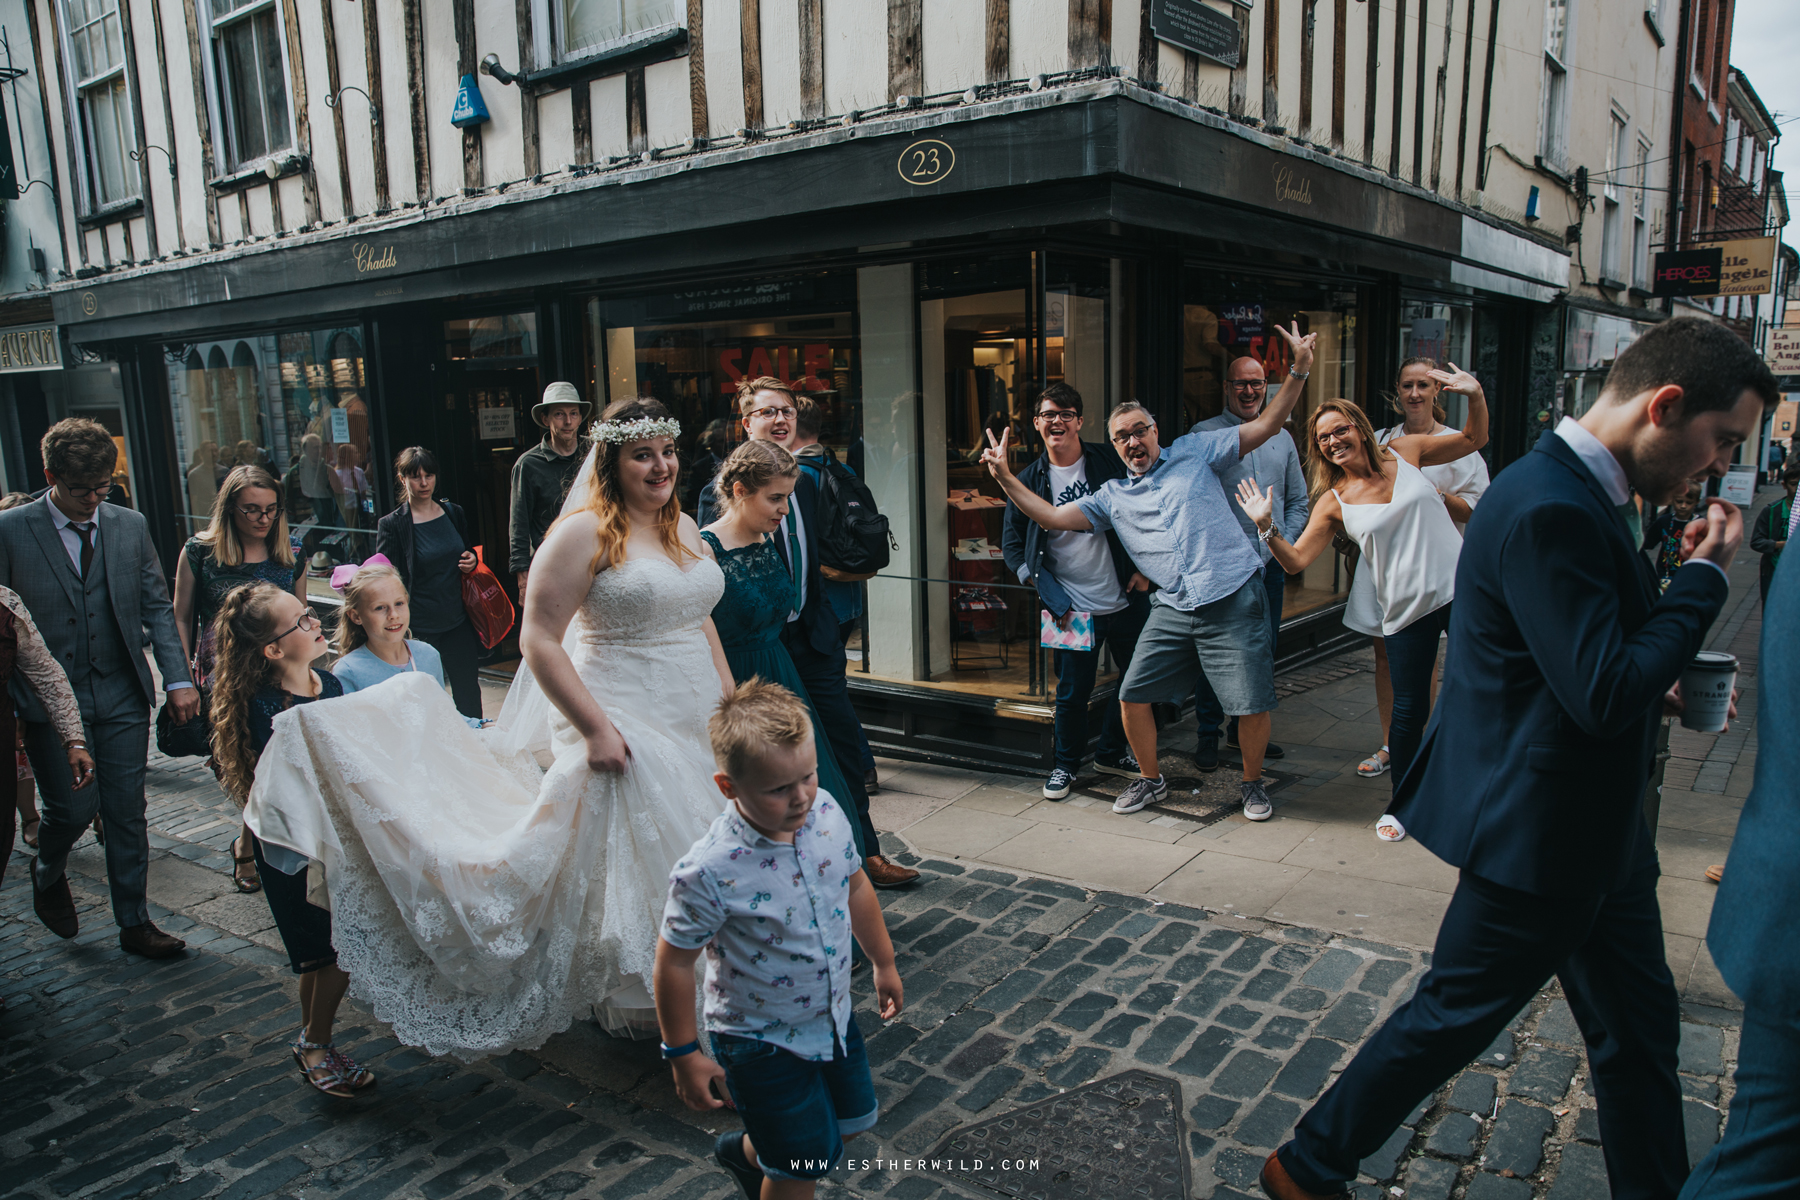 Norwich_Castle_Arcade_Grosvenor_Chip_Birdcage_Cathedral_Cloisters_Refectory_Wedding_Photography_Esther_Wild_Photographer_Norfolk_Kings_Lynn_3R8A1750.jpg